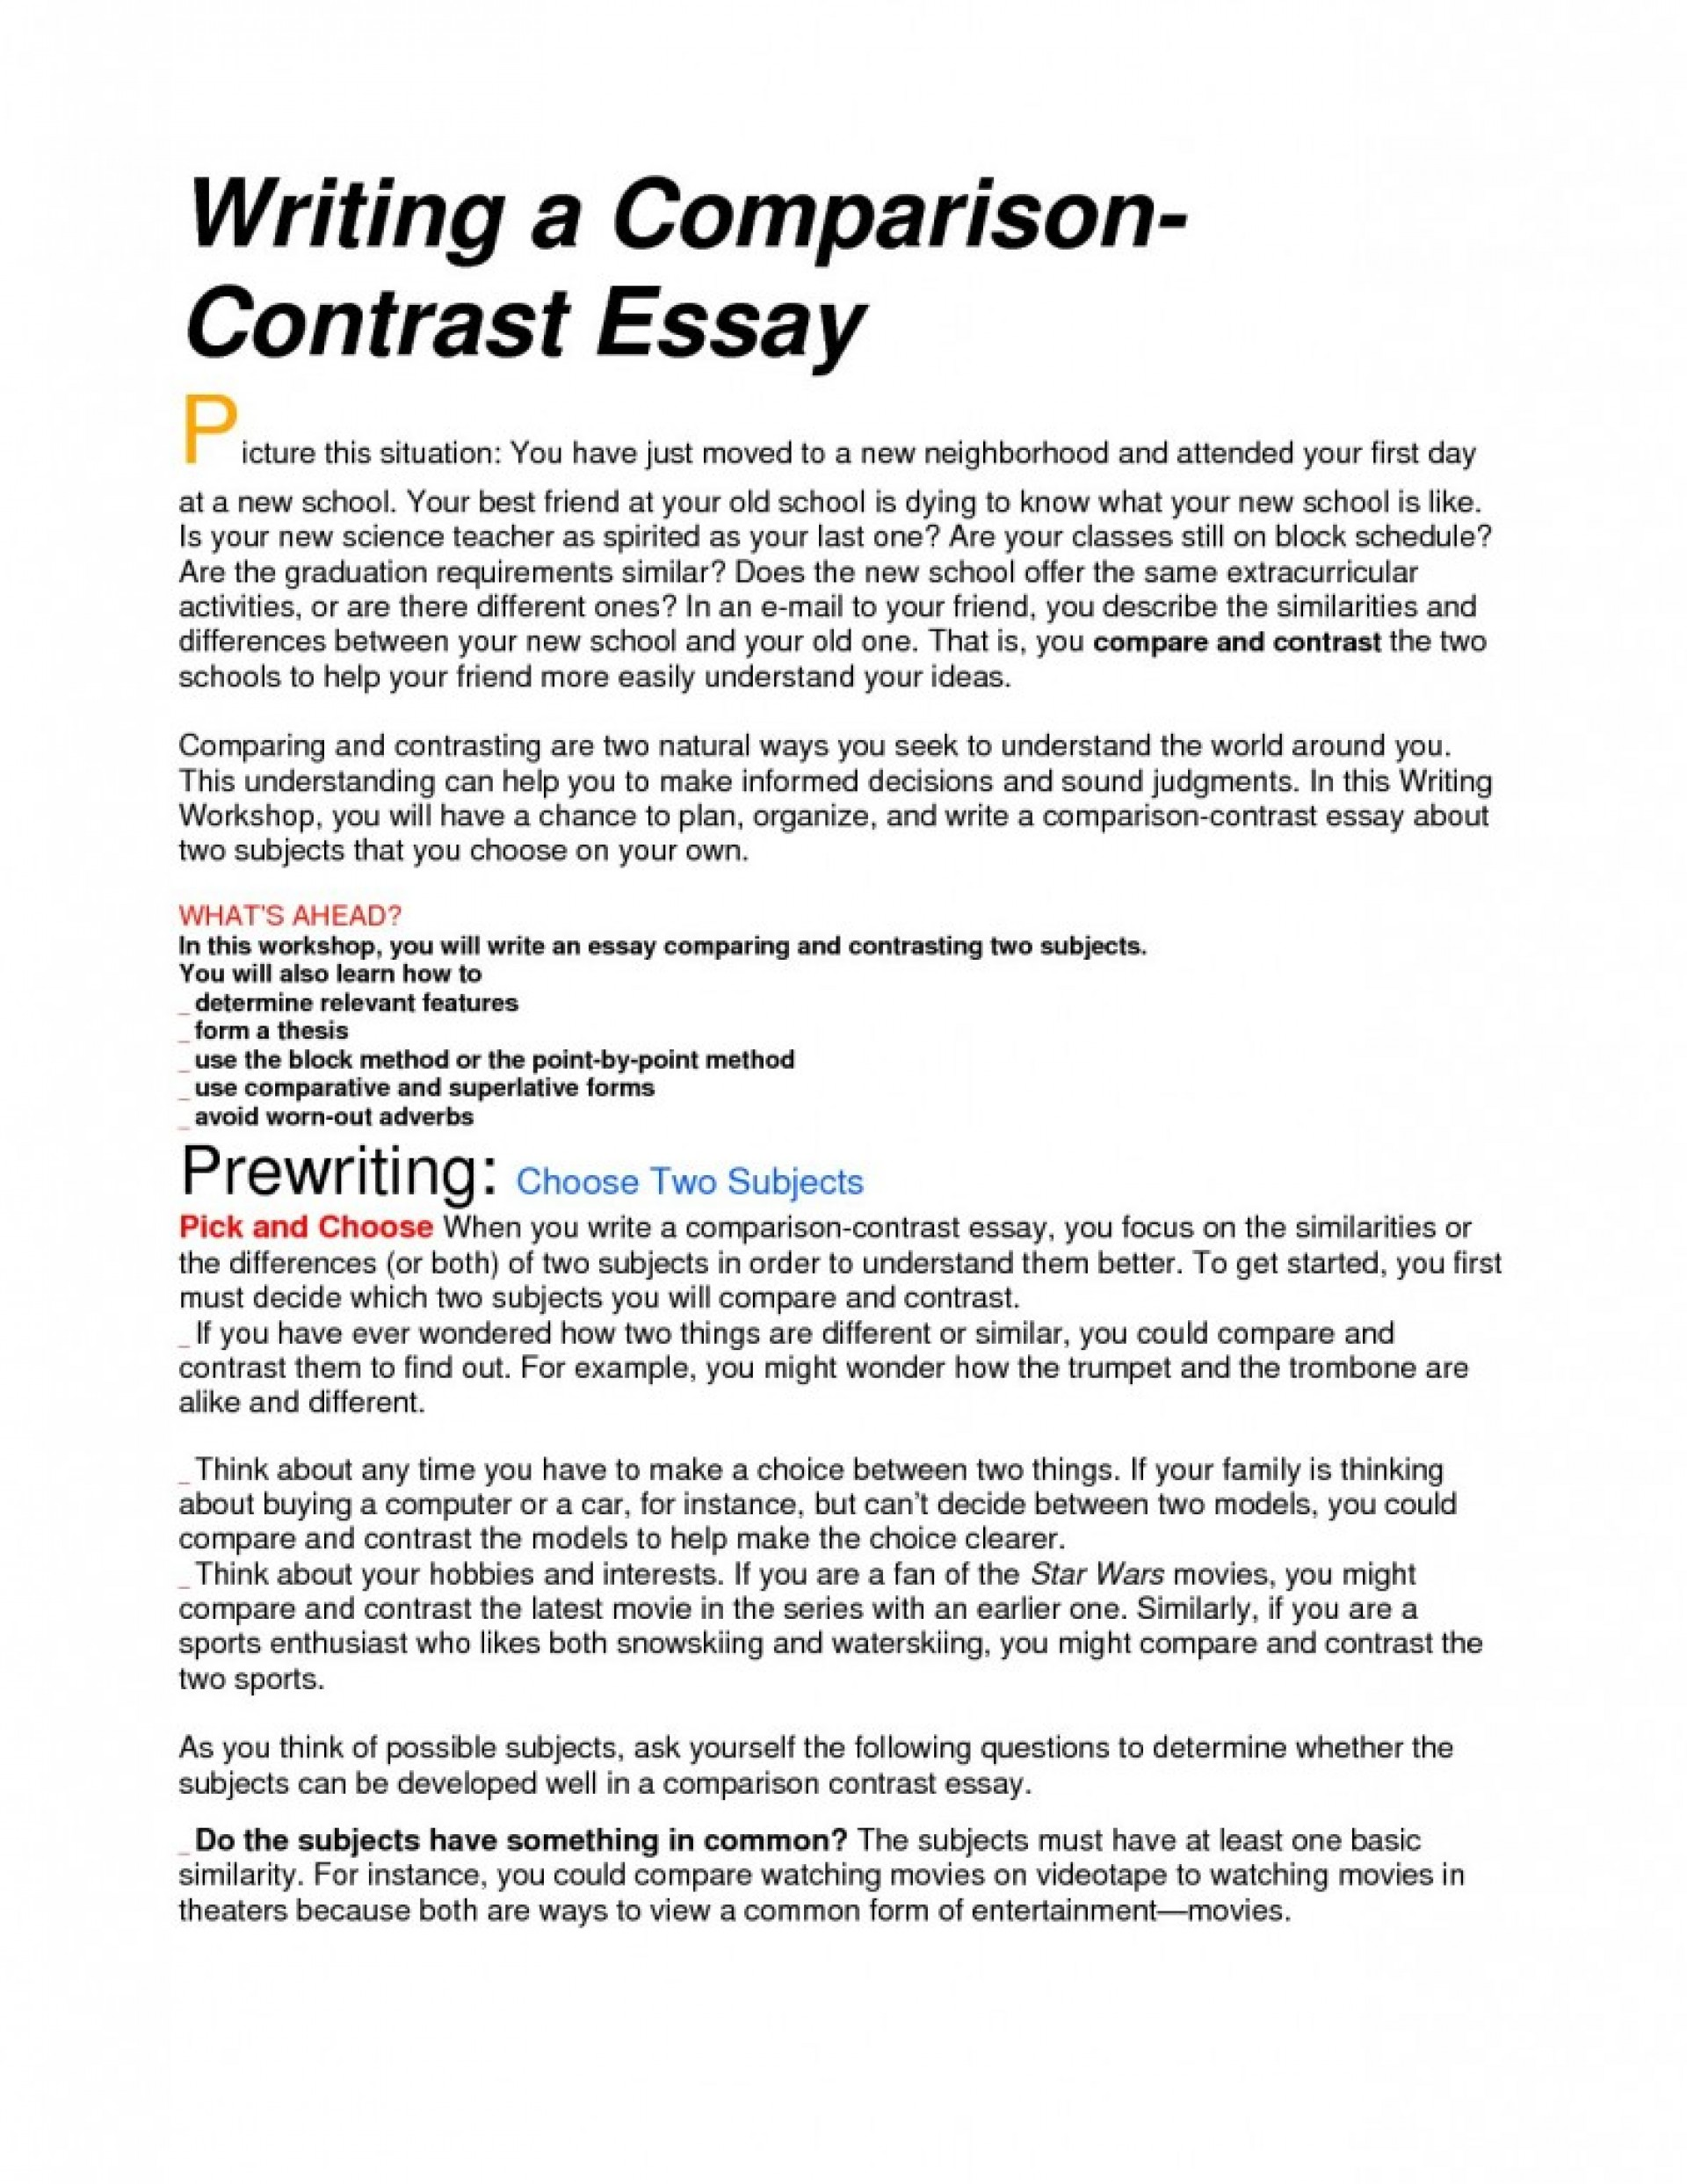 002 Essay Paperss Argumentative Topics For High School Funny College Stu Creative Students Sample Compare And Contrast Beautiful 1920